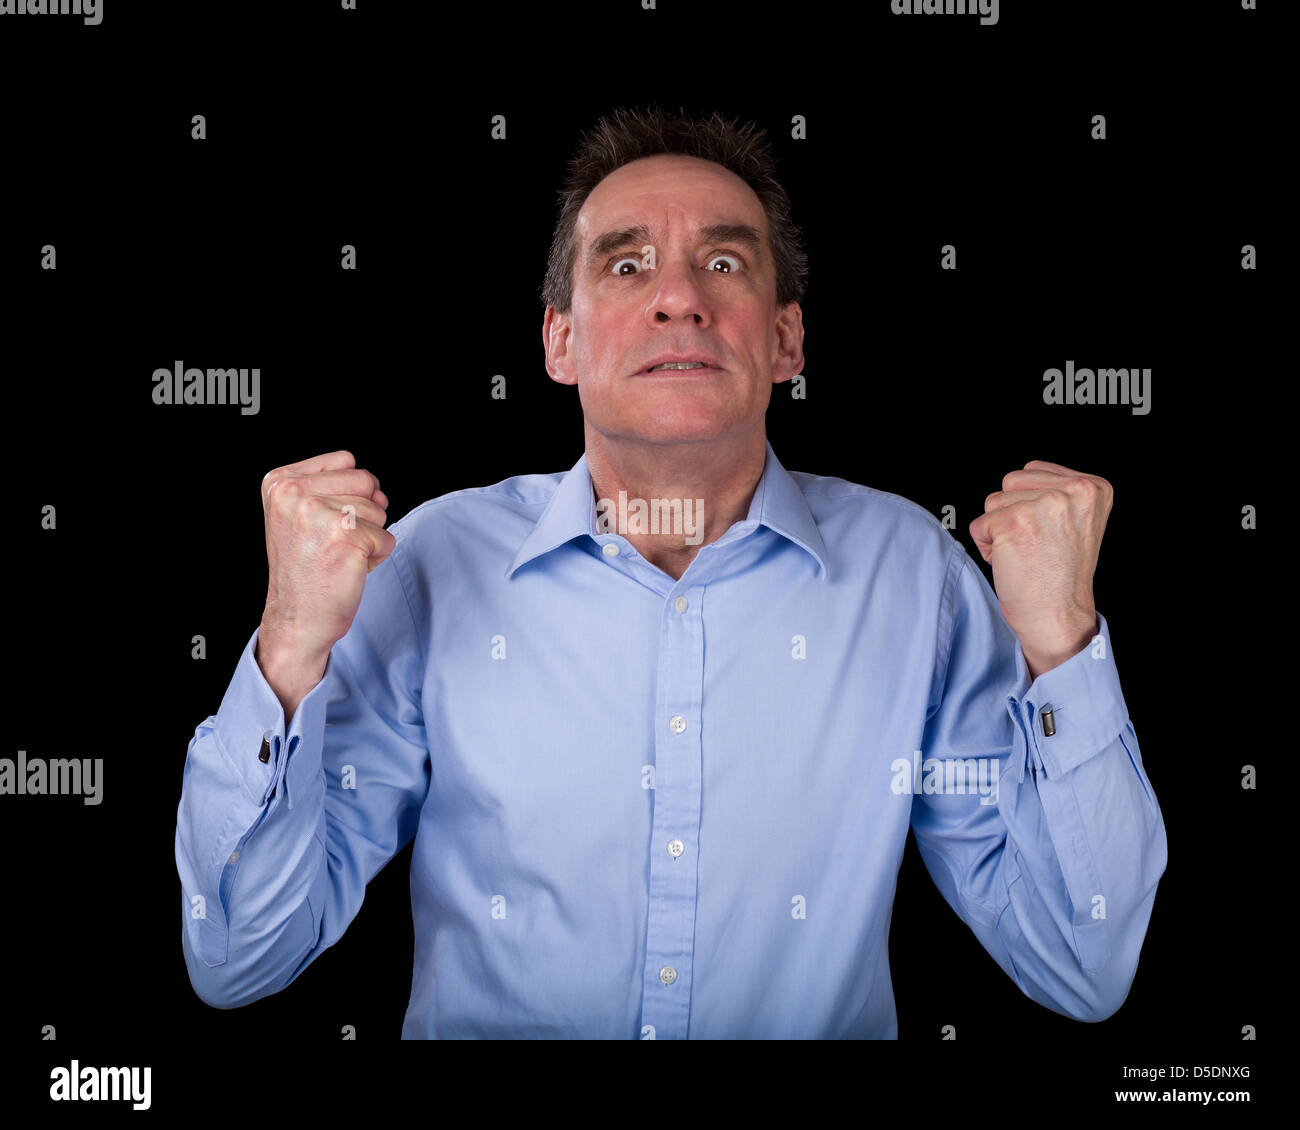 Frustrated Middle Age Business Man Shaking Fists in Anger Black Background - Stock Image